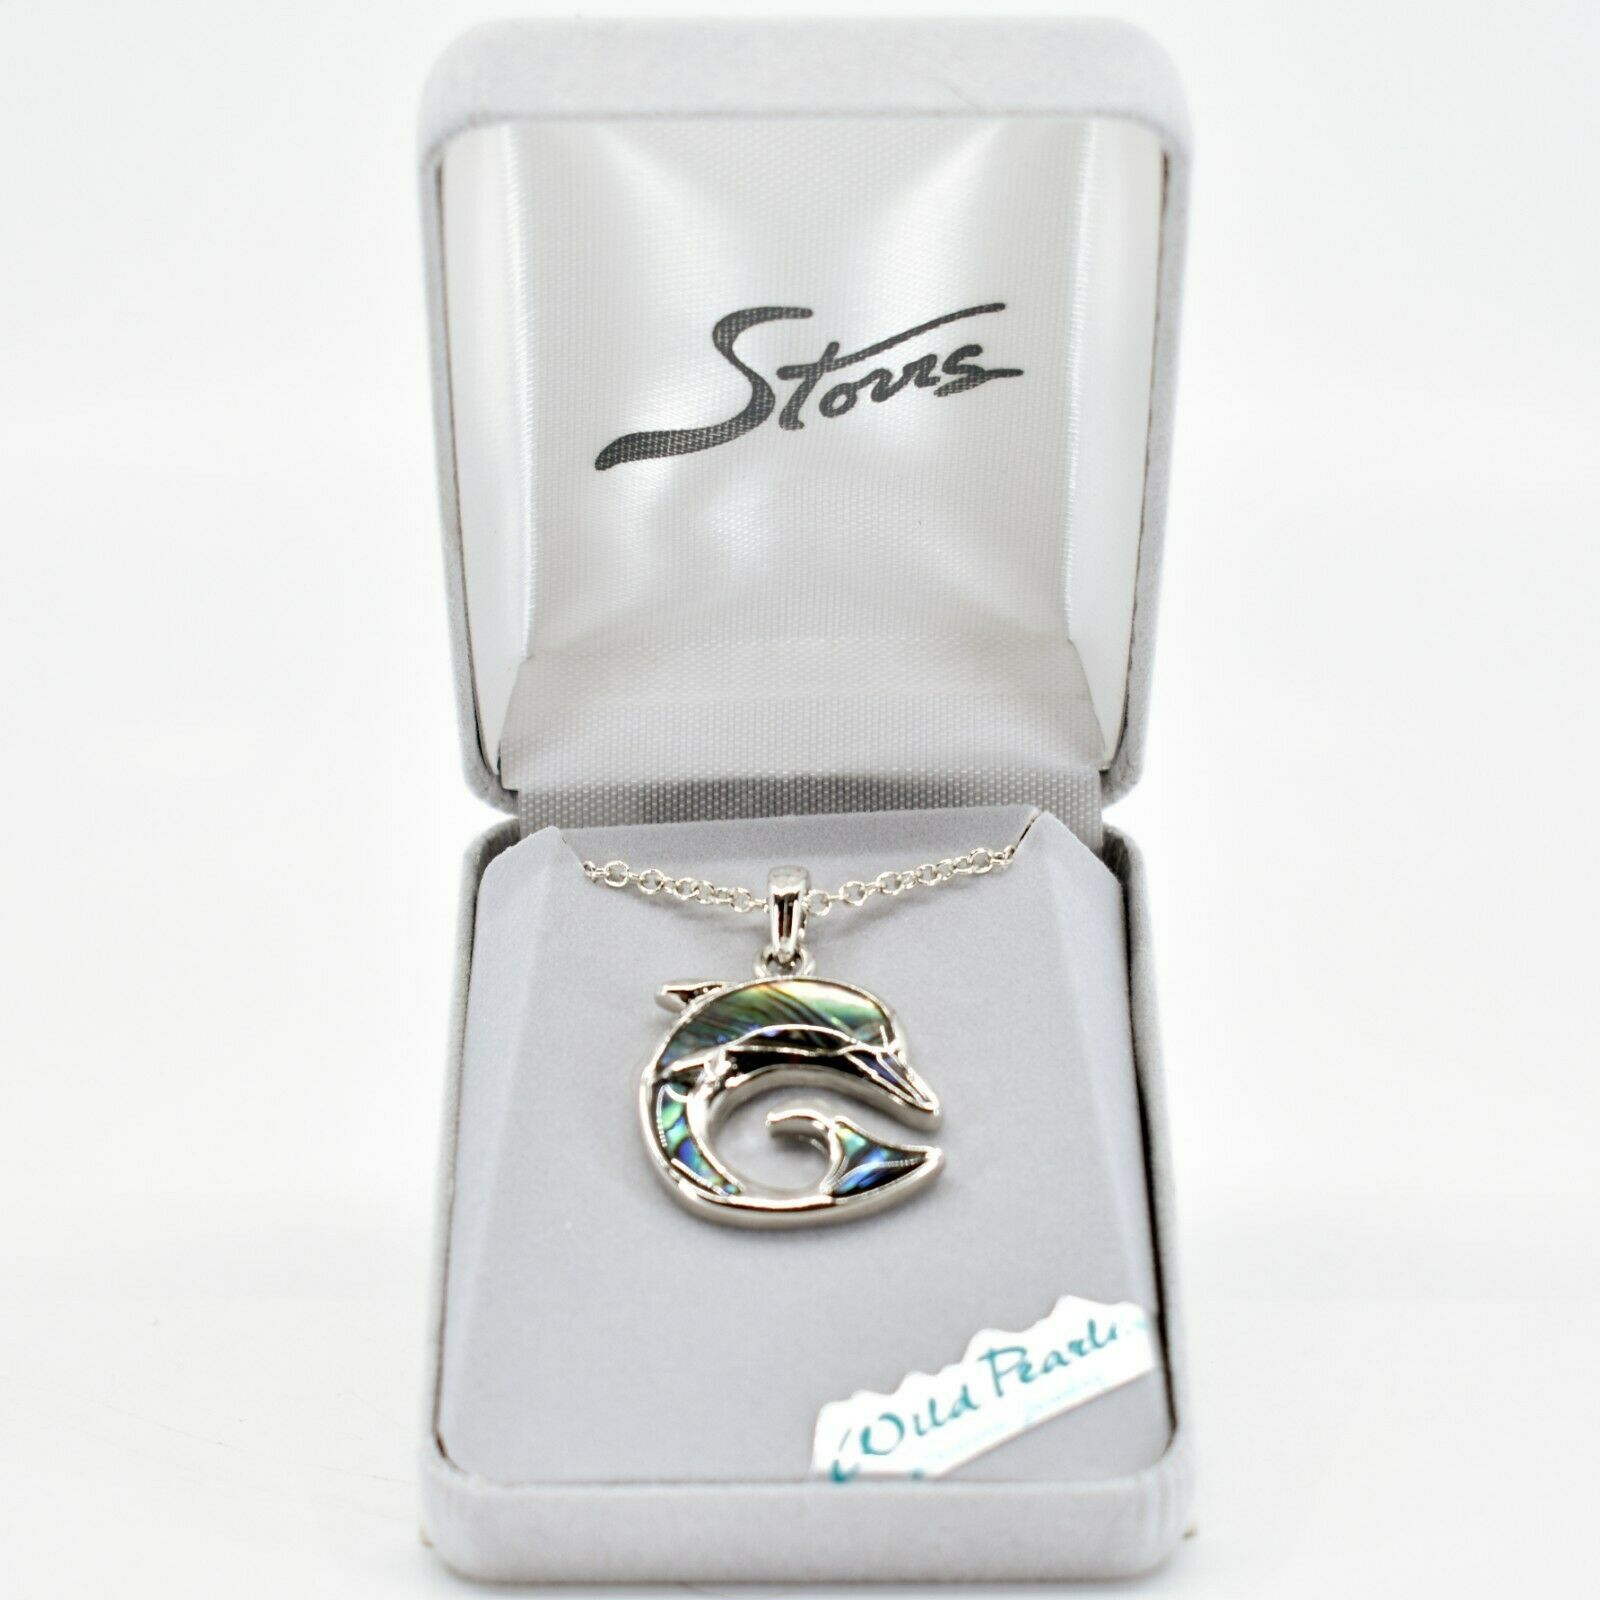 Storrs Wild Pearle Abalone Shell Dolphin Delight Pendant w/ Silver Tone Necklace